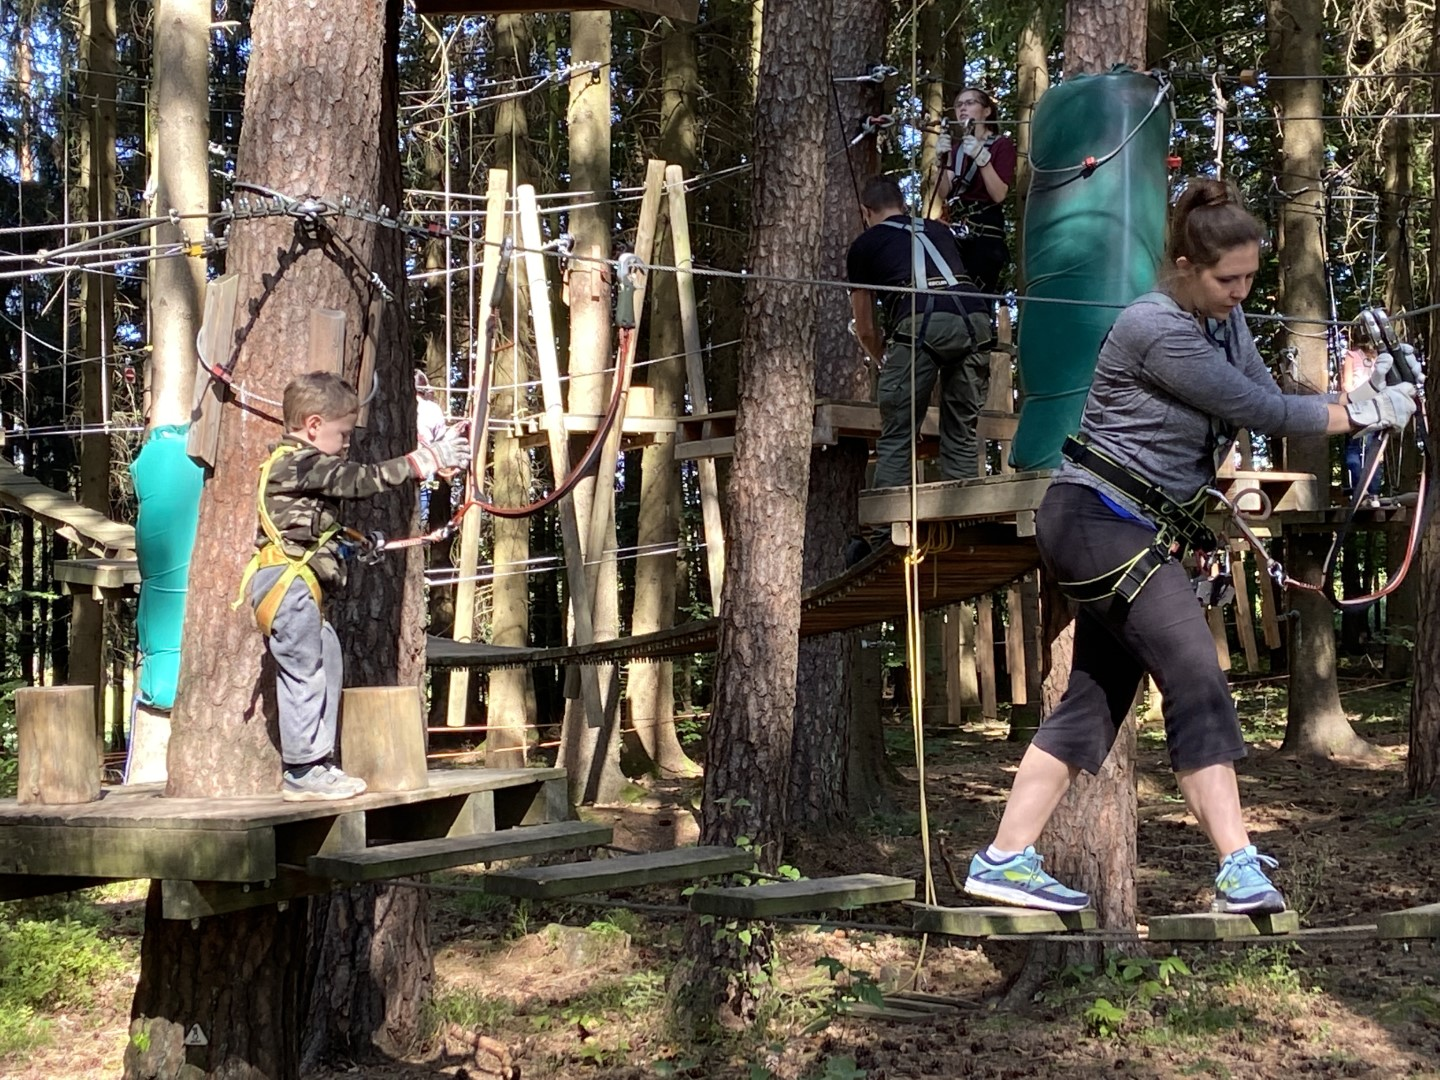 things to do in germany with kids: Klettersteigs